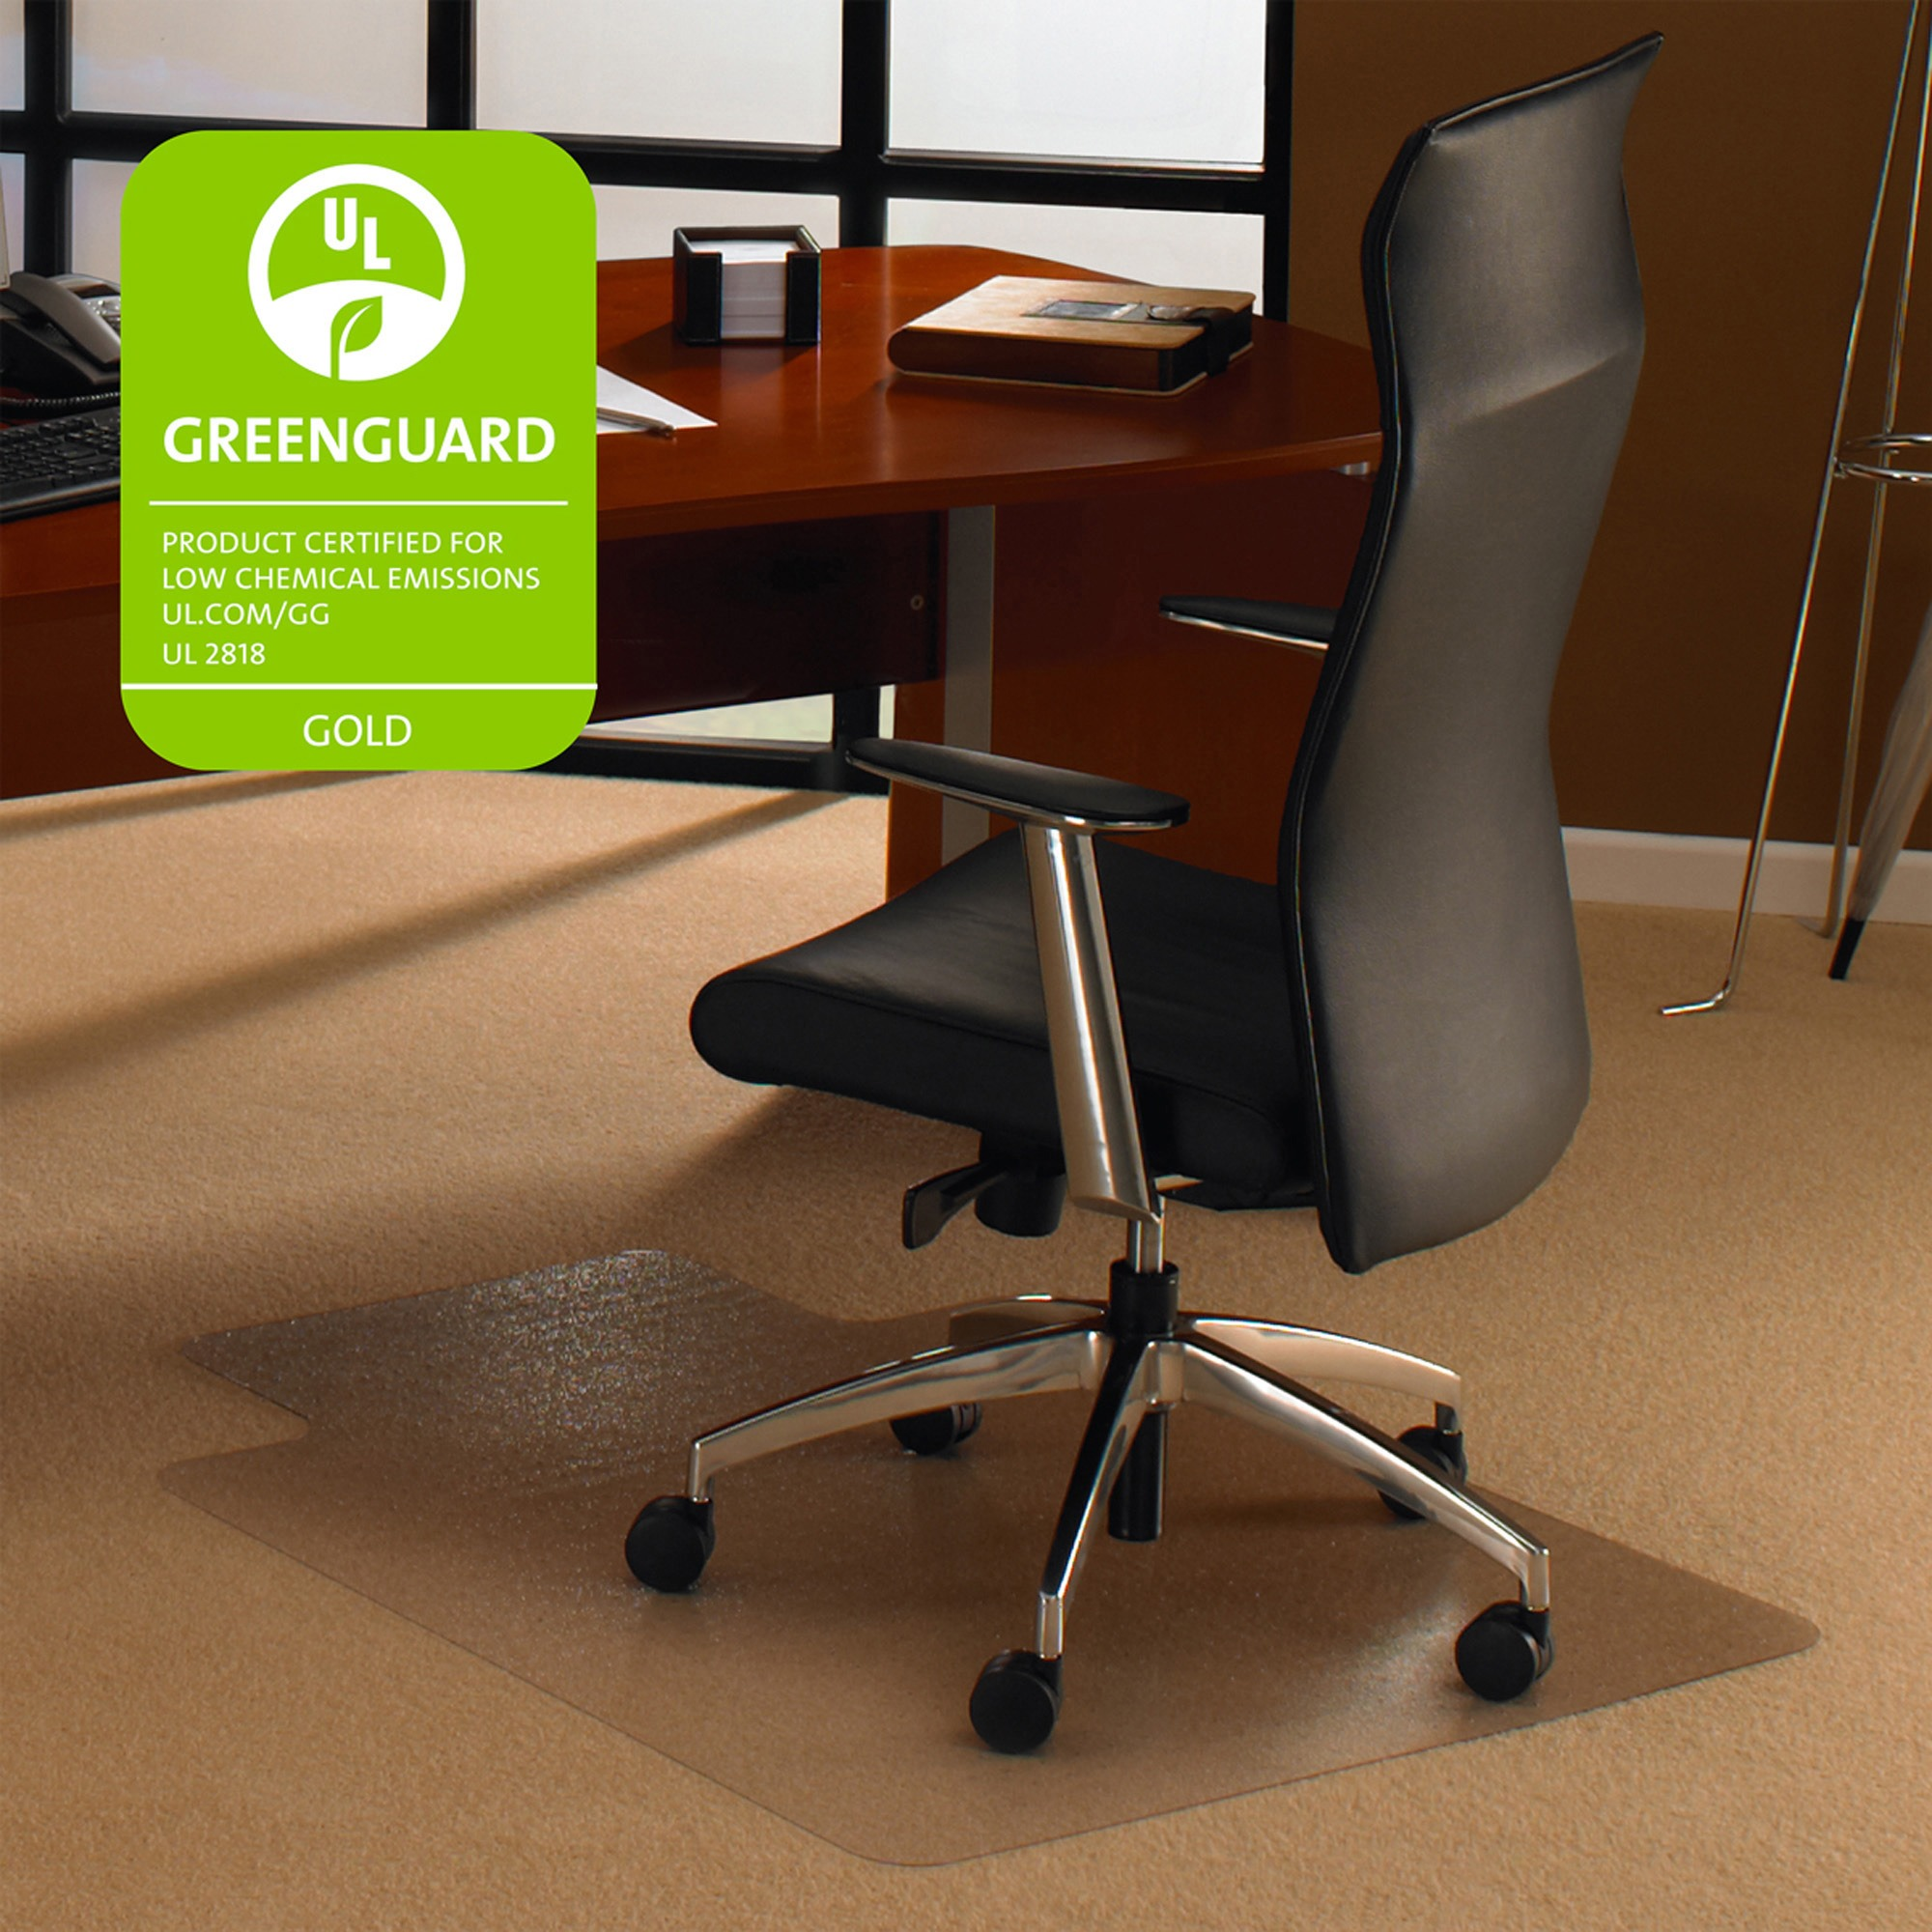 Floortex Cleartex Ultimat 35 x 47 Chair Mat for Low and Medium Pile Carpet, Rectangular with Lip